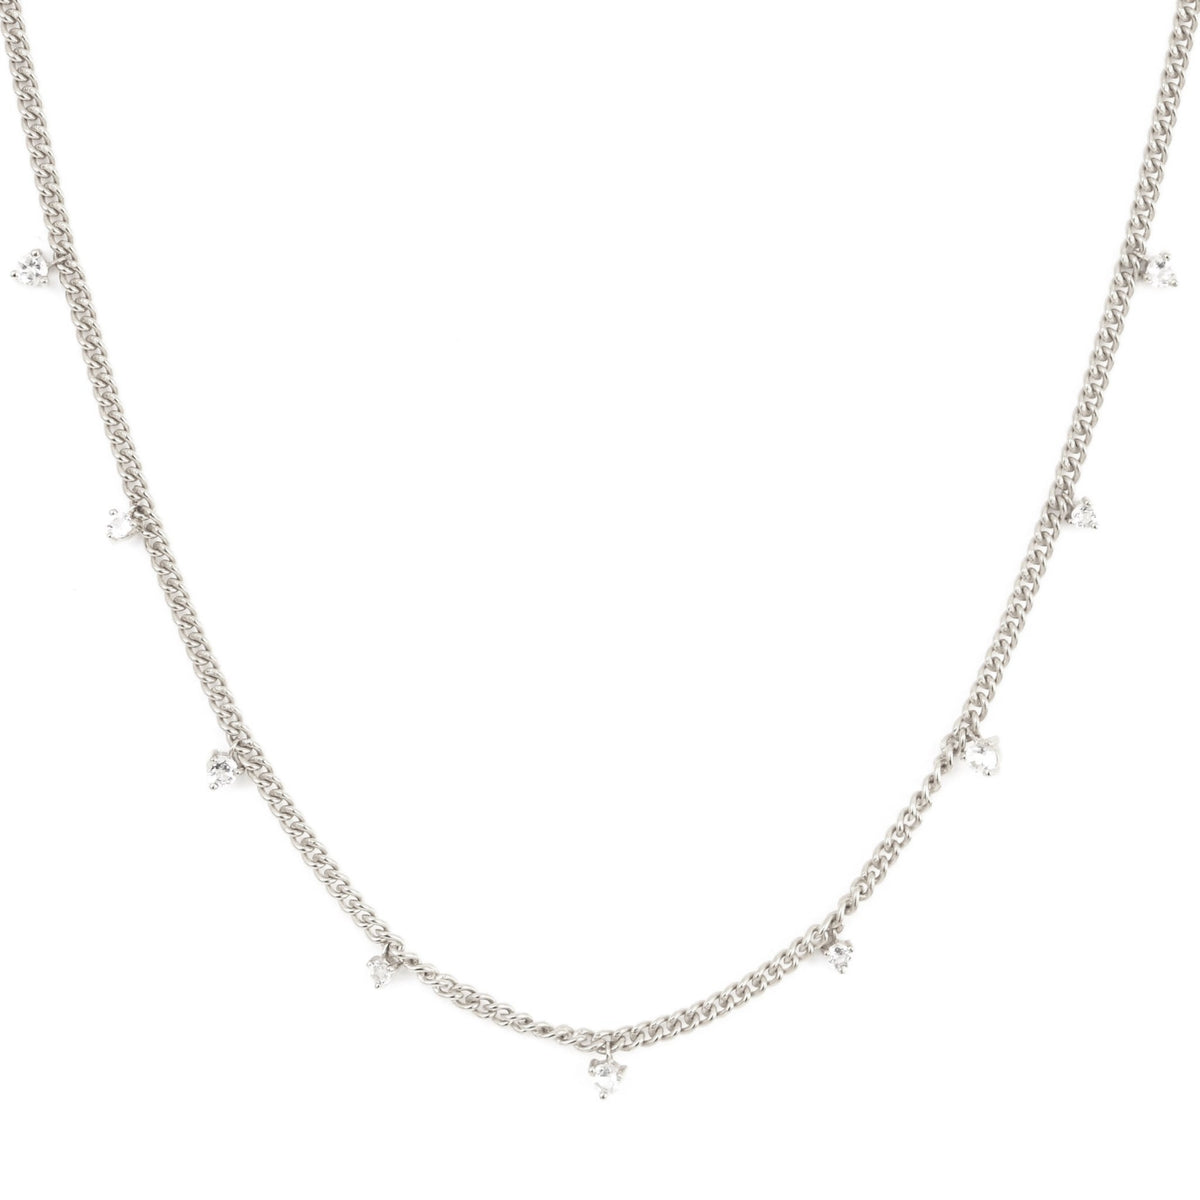 UNITY CROWN CURB LINK NECKLACE - WHITE TOPAZ & SILVER - SO PRETTY CARA COTTER